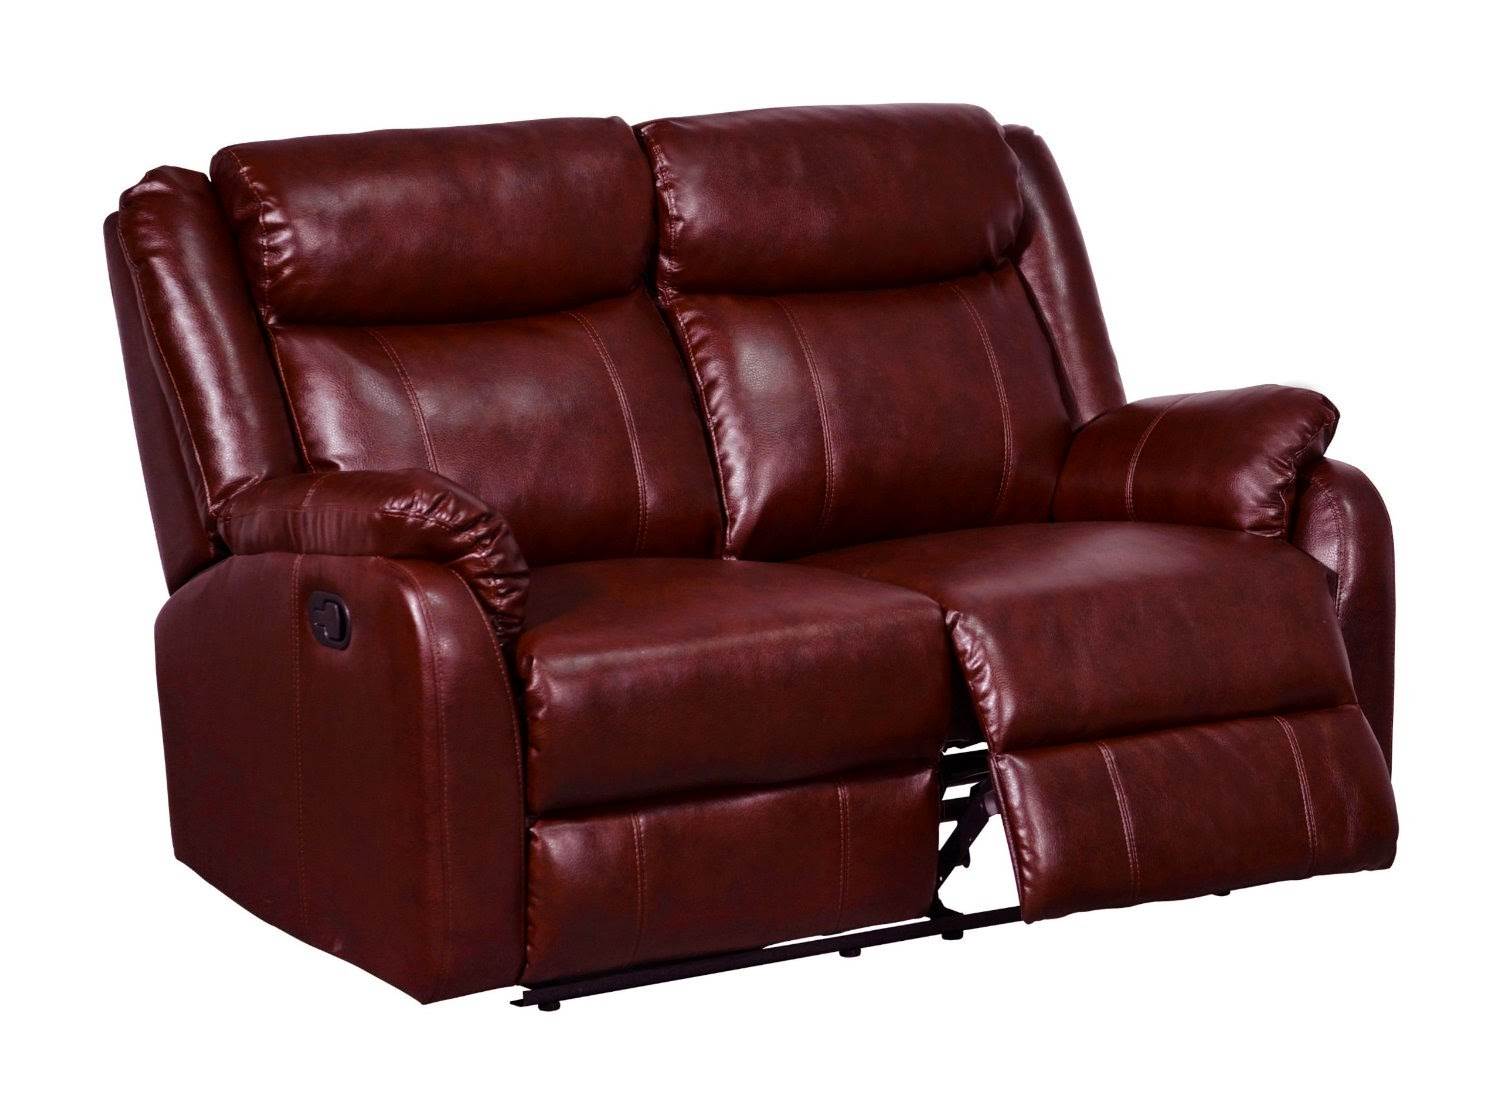 Modena 2 Seater Reclining Leather Sofa Milan Garden Set The Best Sofas Ratings Reviews